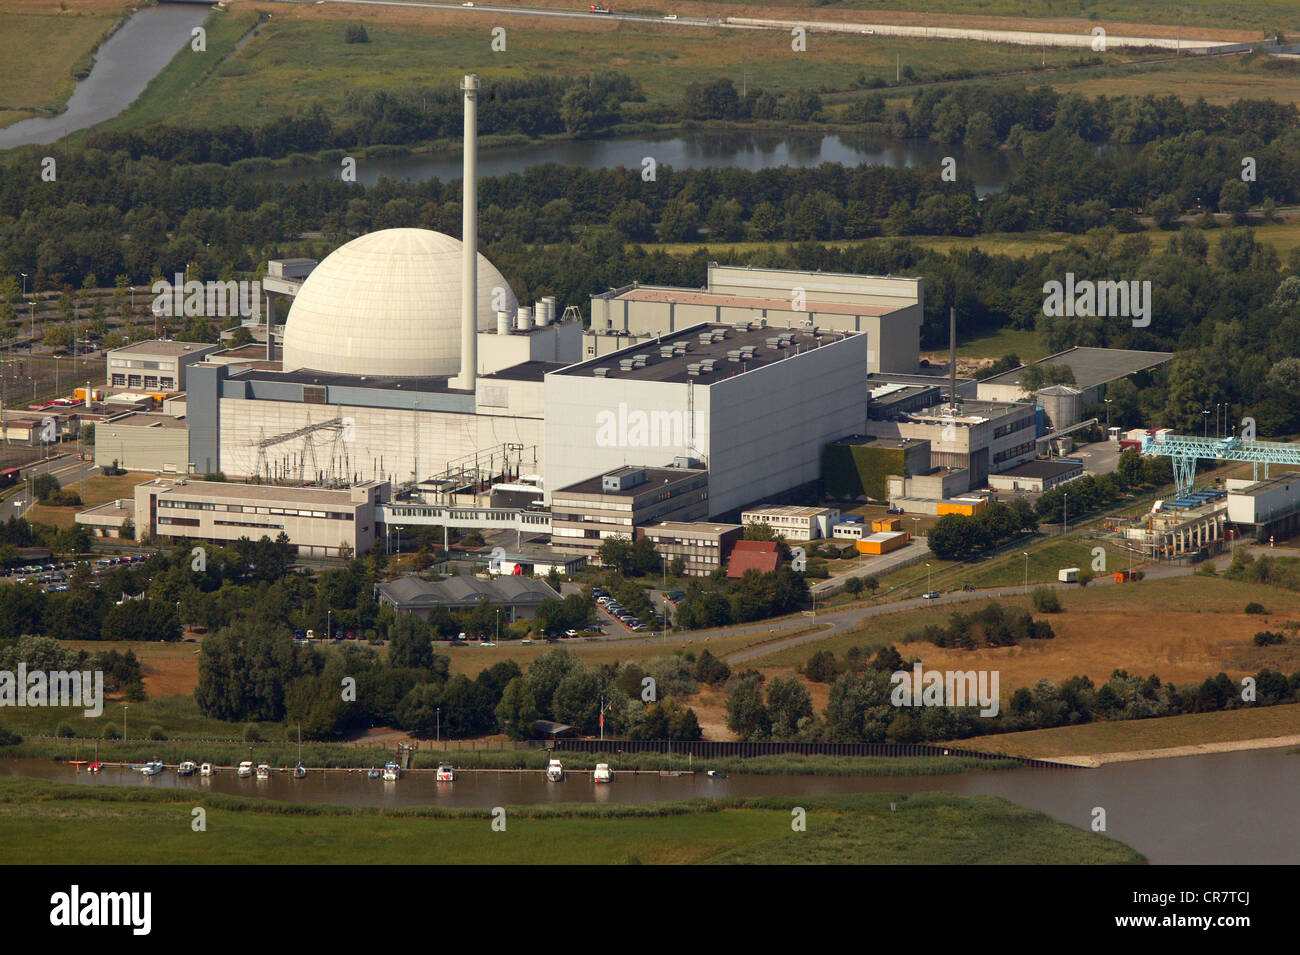 Aerial view, Unterweser Nuclear Power Plant, also known as KKW Kleinensiel and KKW Esenshamm, Lower Saxony, Germany, - Stock Image